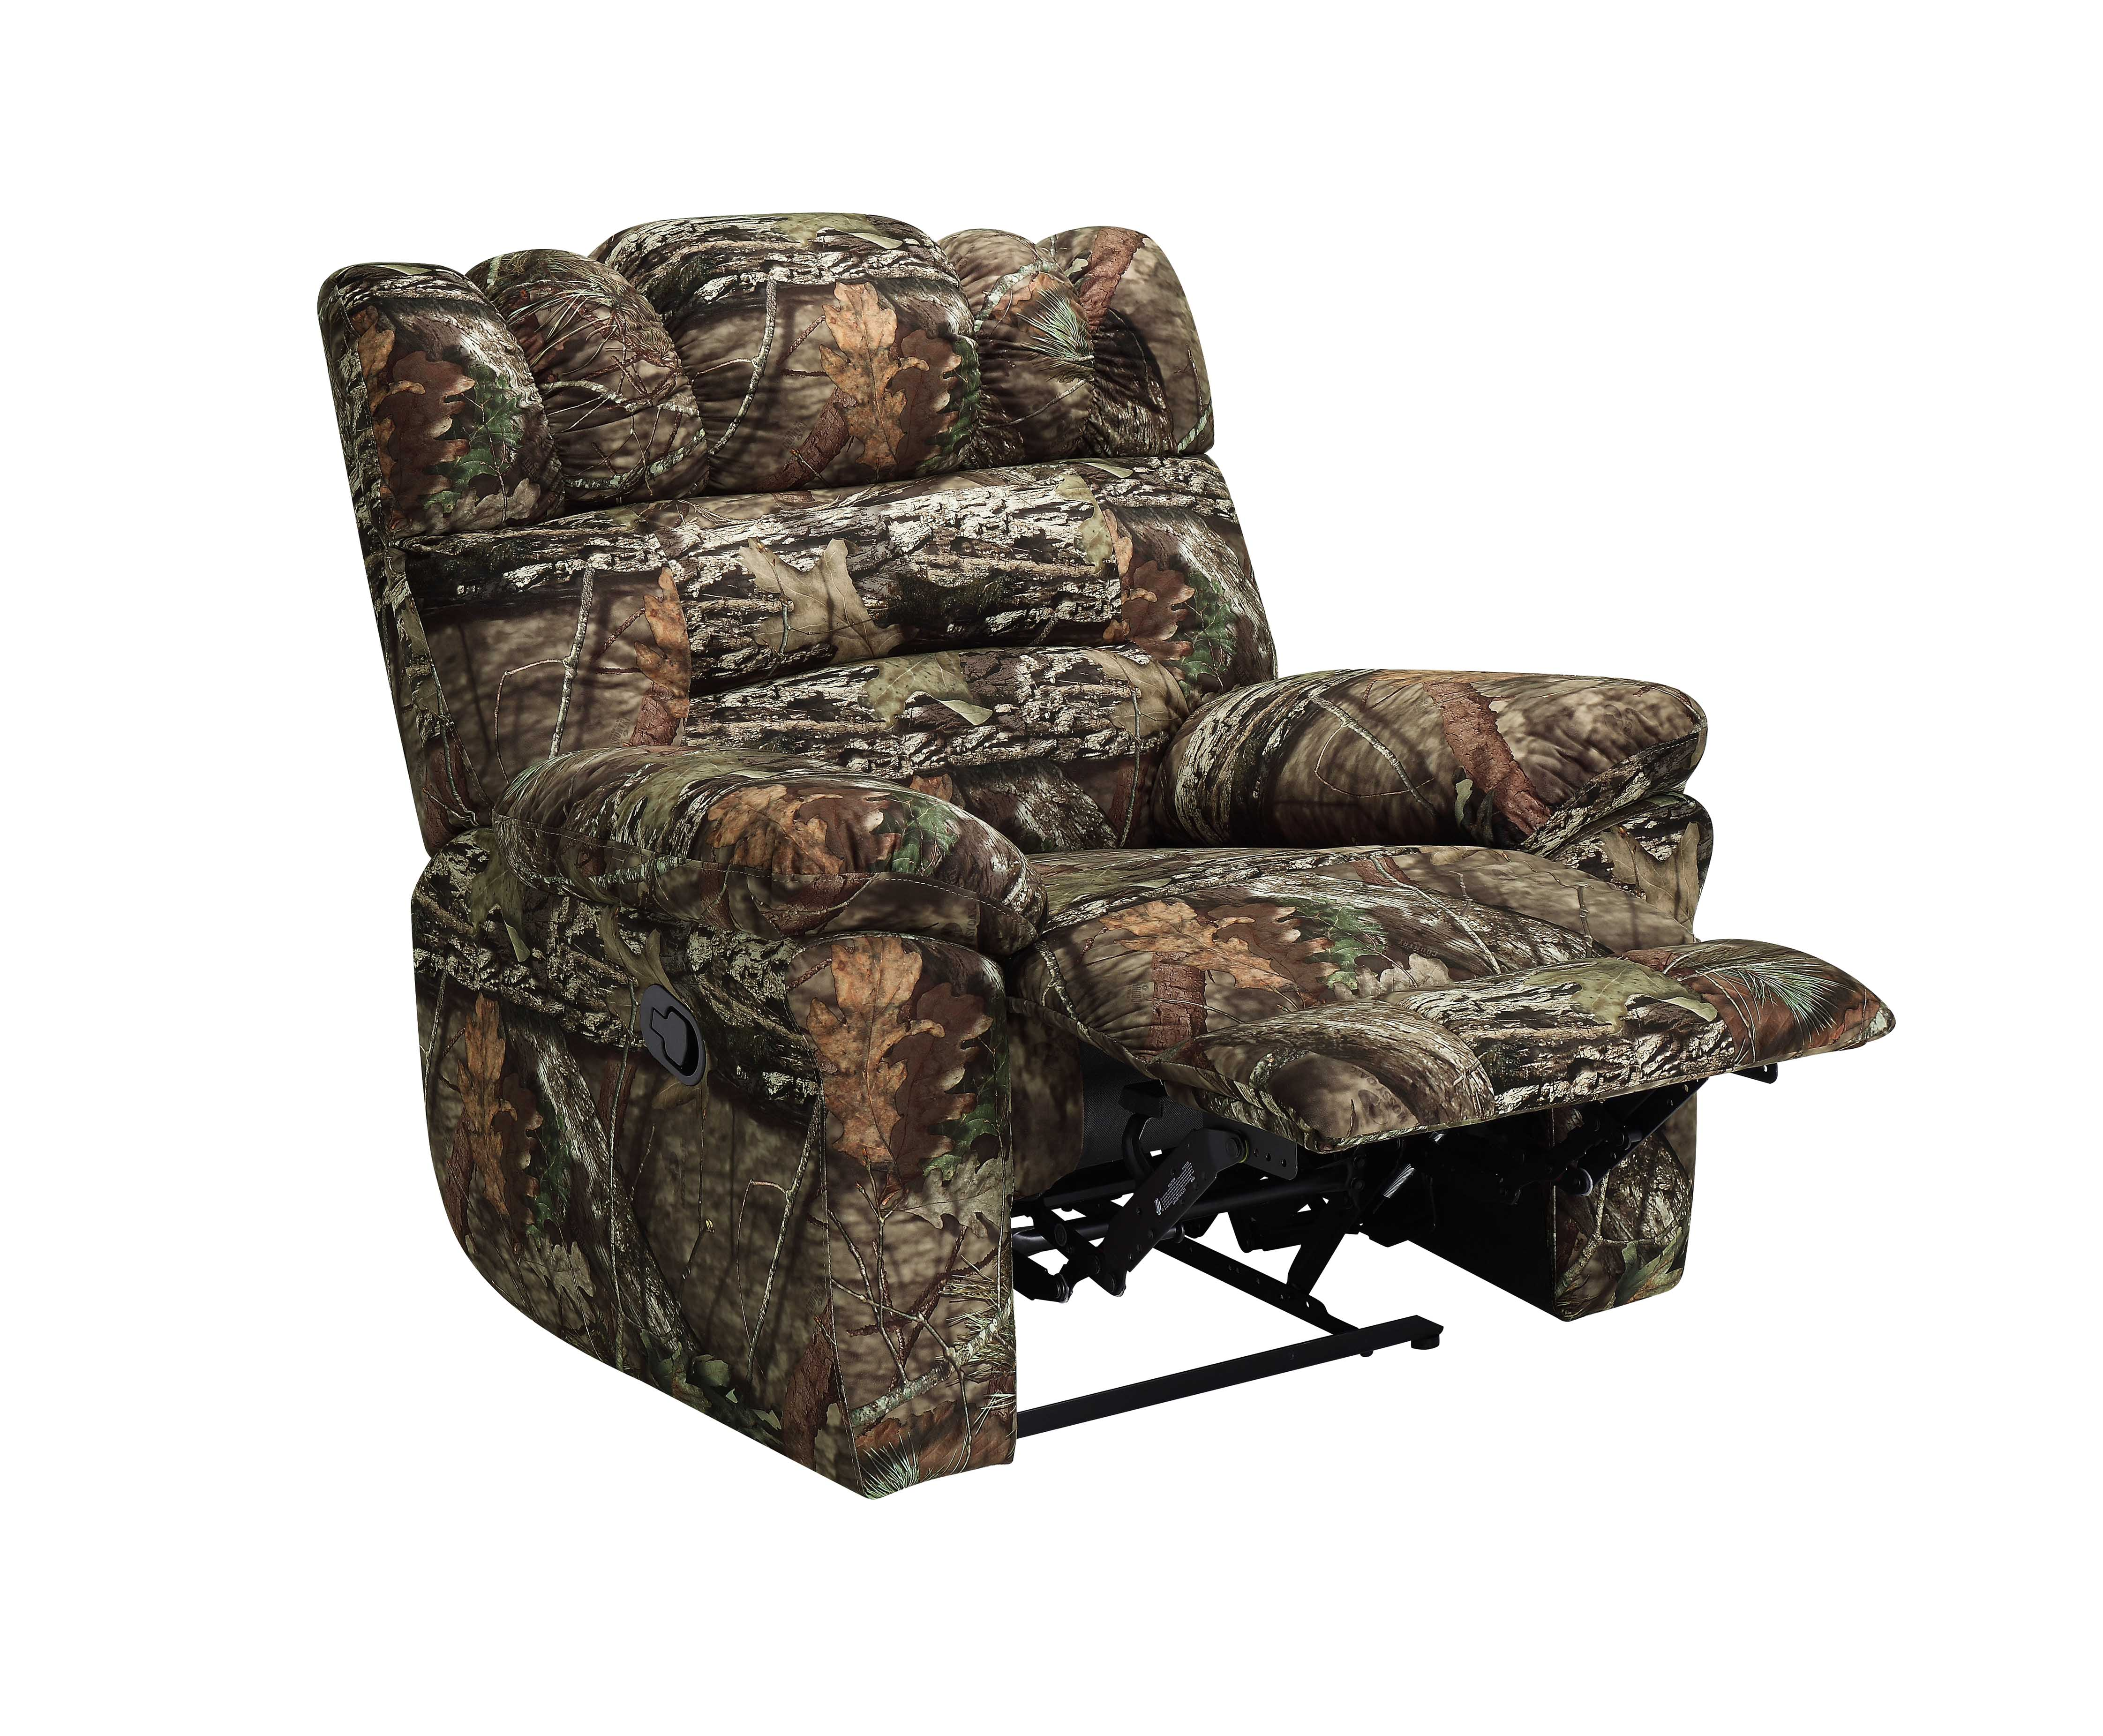 big and tall hunting chairs shower chair or stool mossy oak break up country recliner walmart com